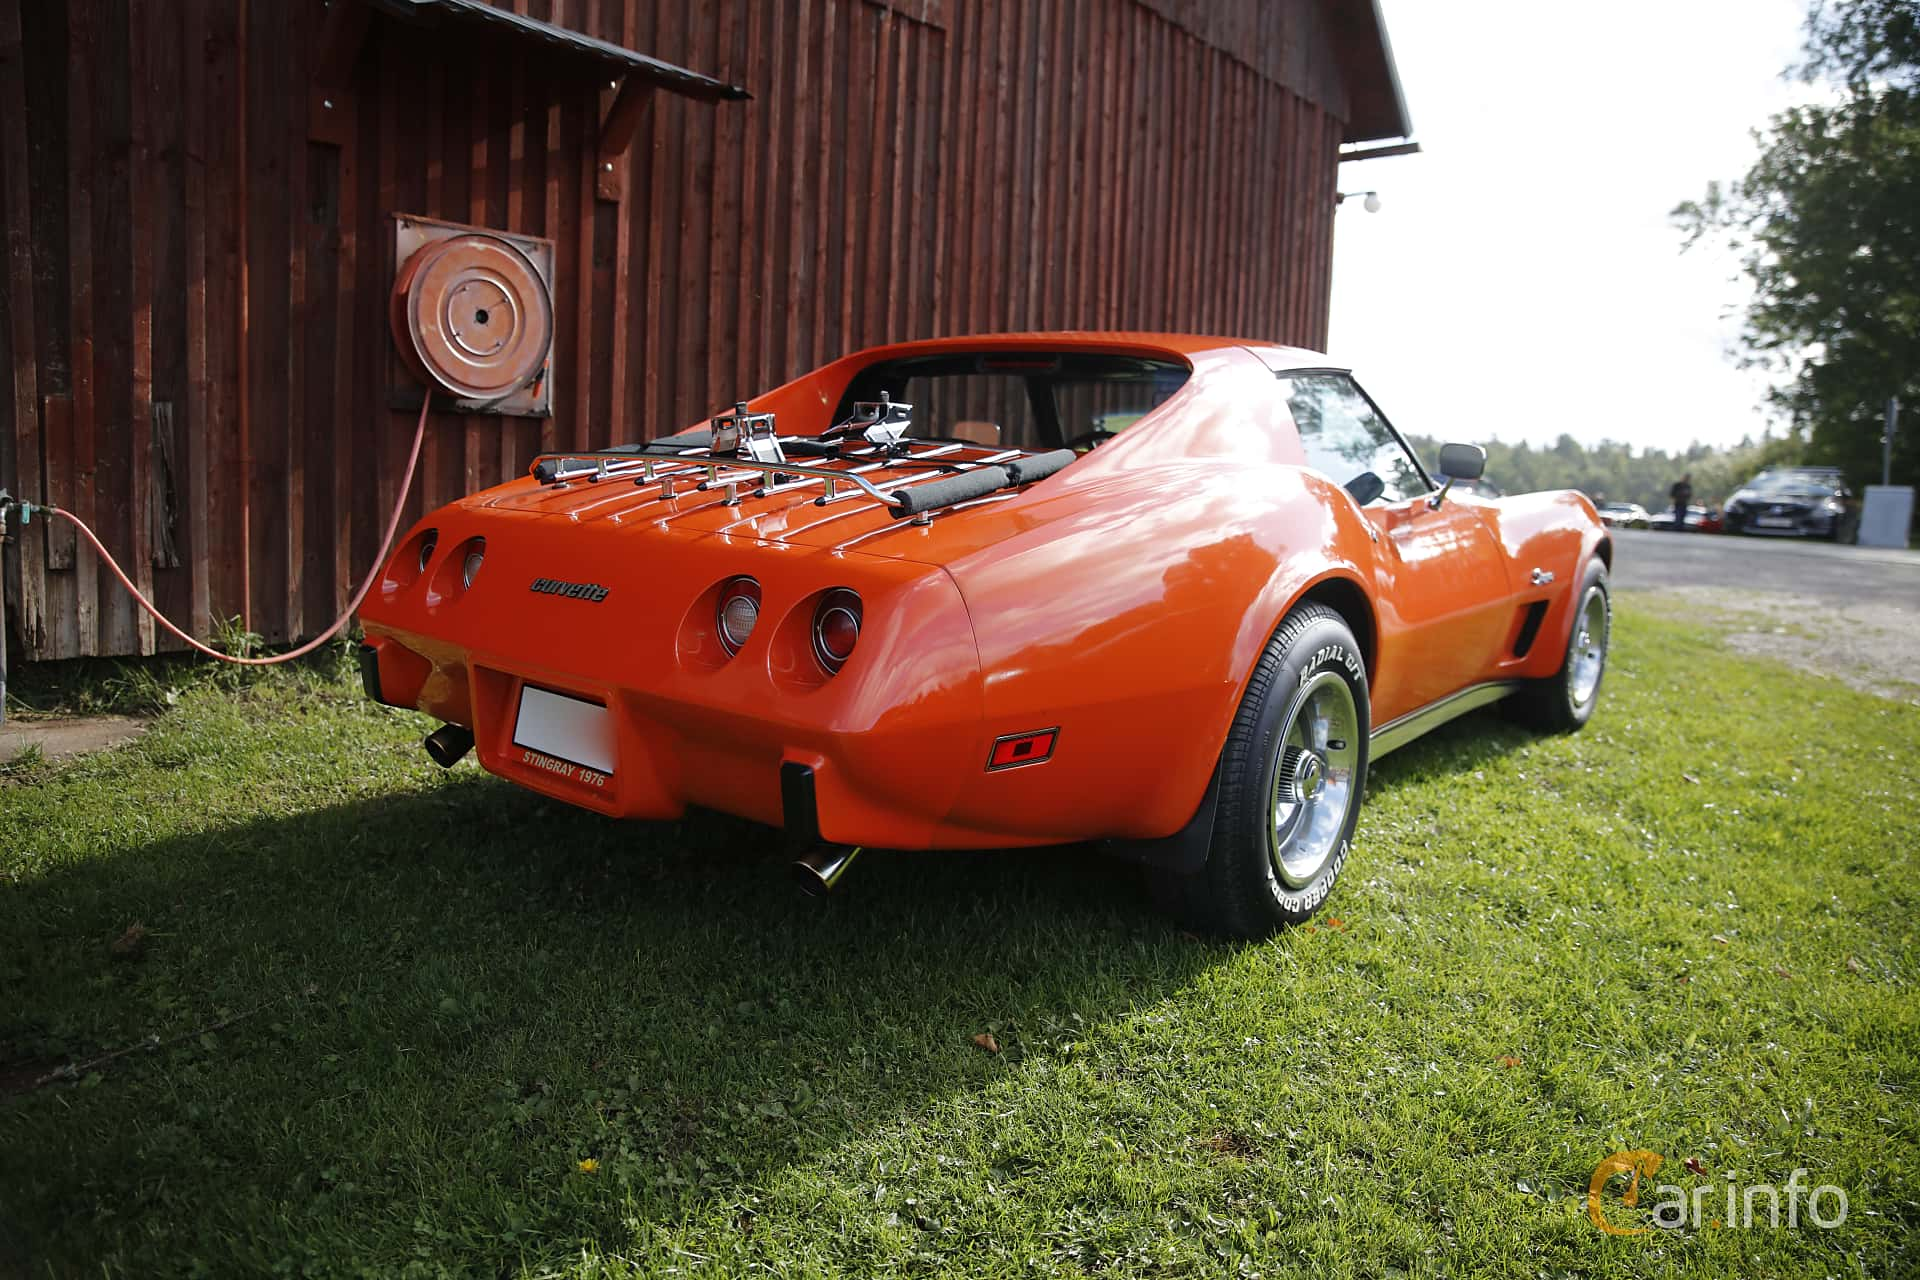 Chevrolet Corvette Stingray 5.7 V8 Automatic, 213hp, 1976 at Sportvagnsträffen 2016